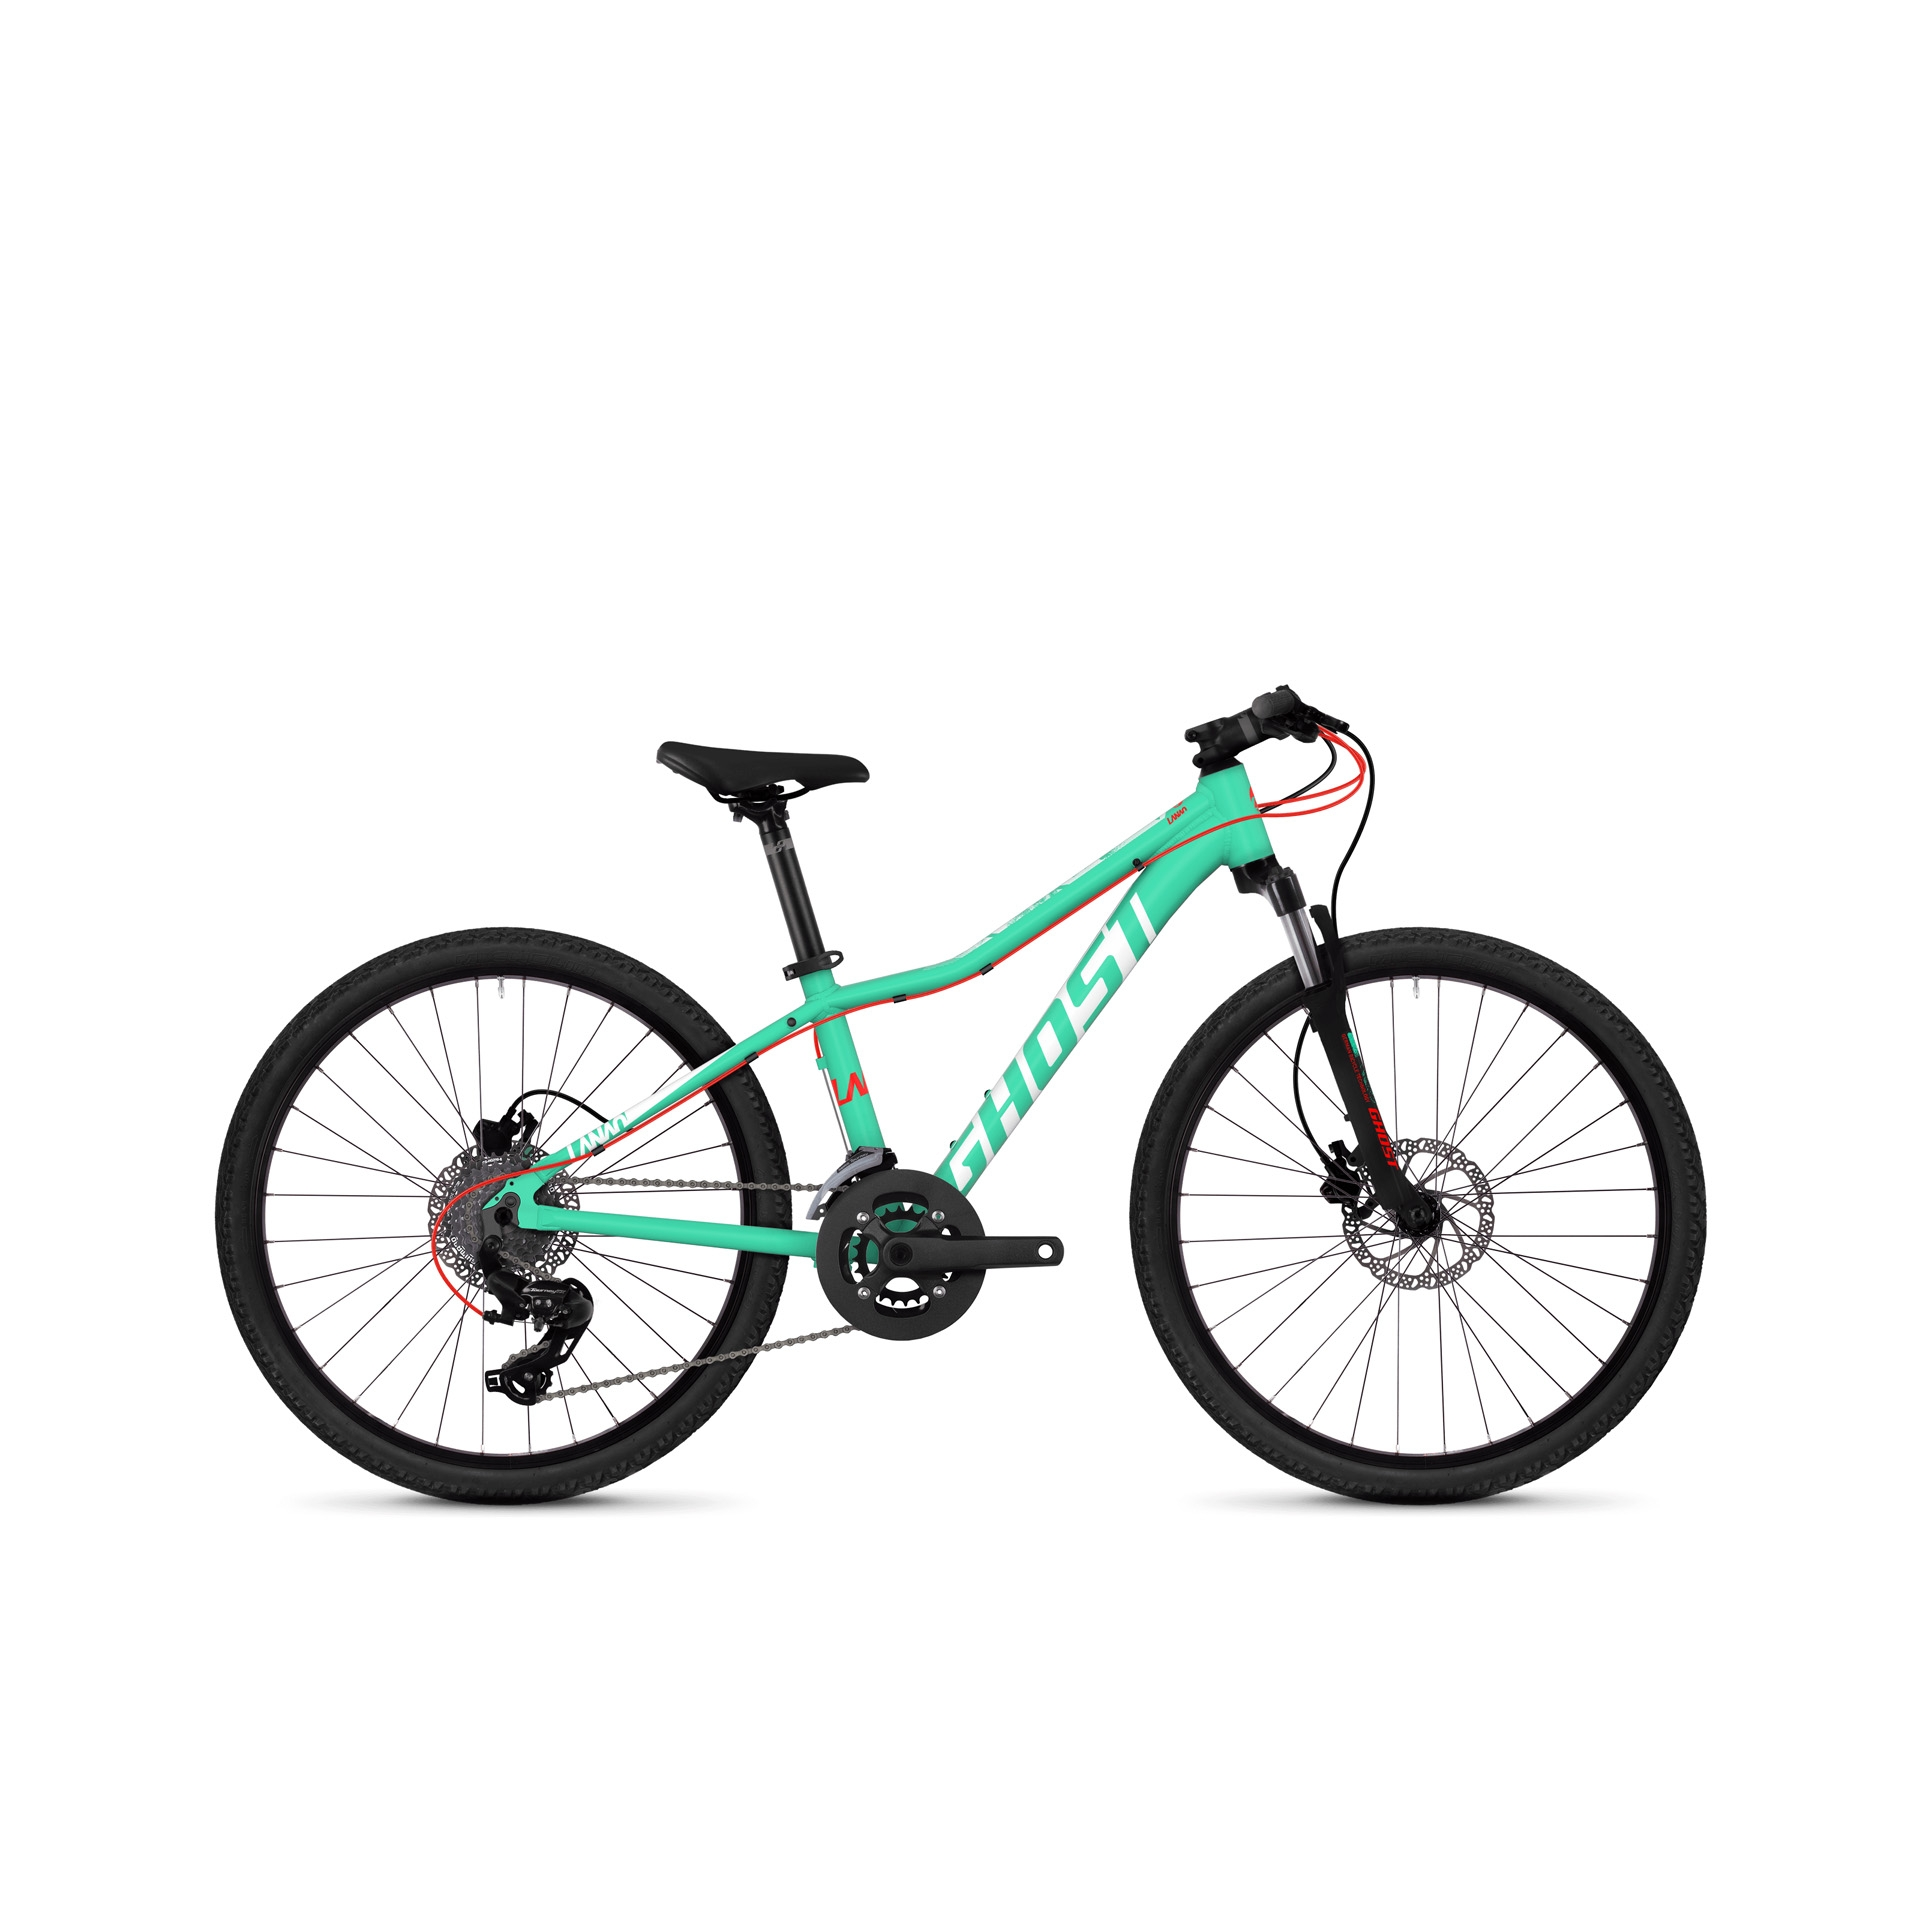 VTT semi-rigide Ghost Lanao Kid D 4.4 24 Disc Bleu/Rouge/Blanc